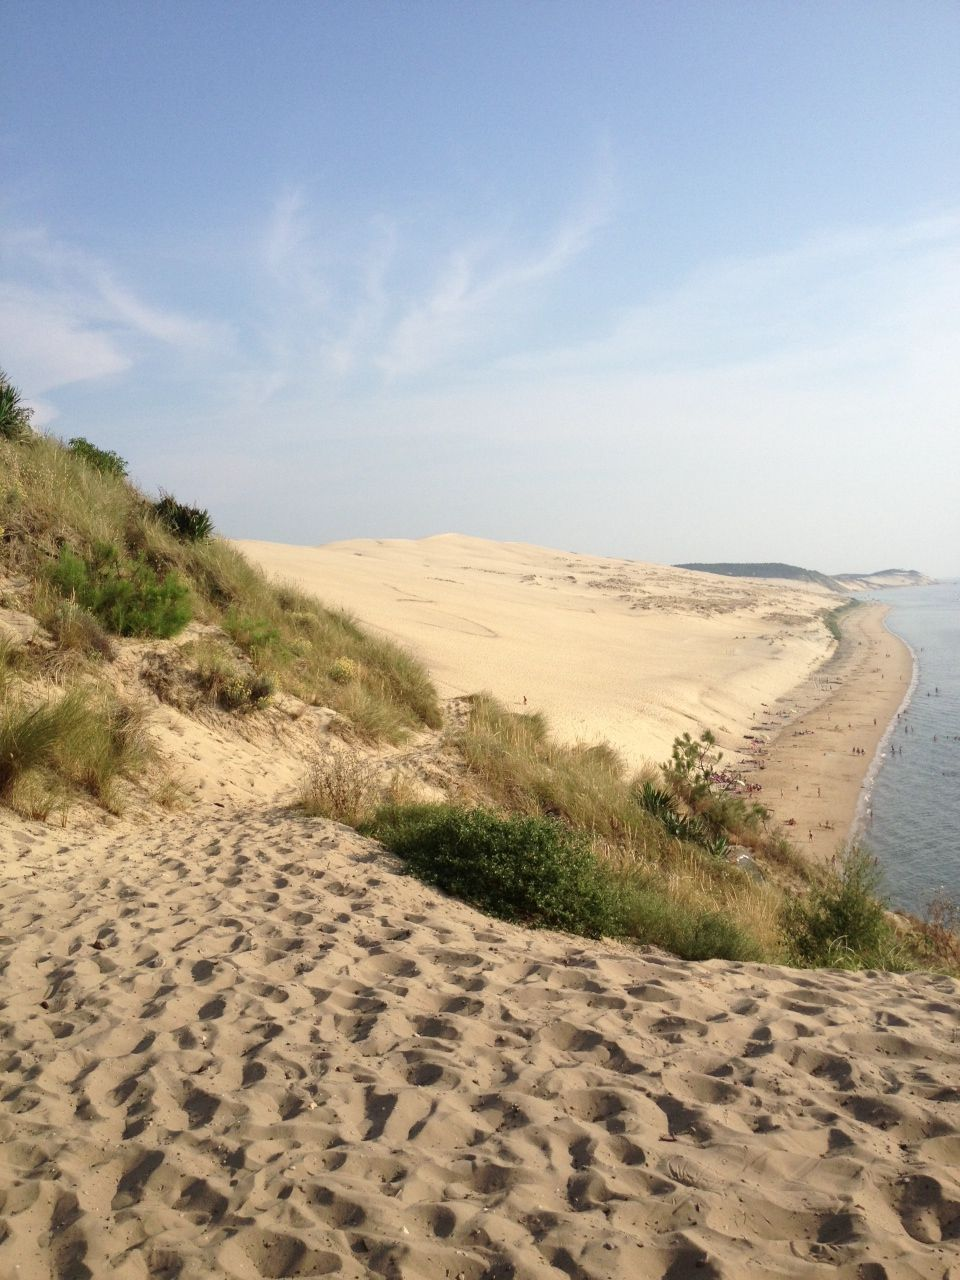 vue de la dune du pyla depuis la corniche bassin d 39 arcachon je me souviens pinterest. Black Bedroom Furniture Sets. Home Design Ideas